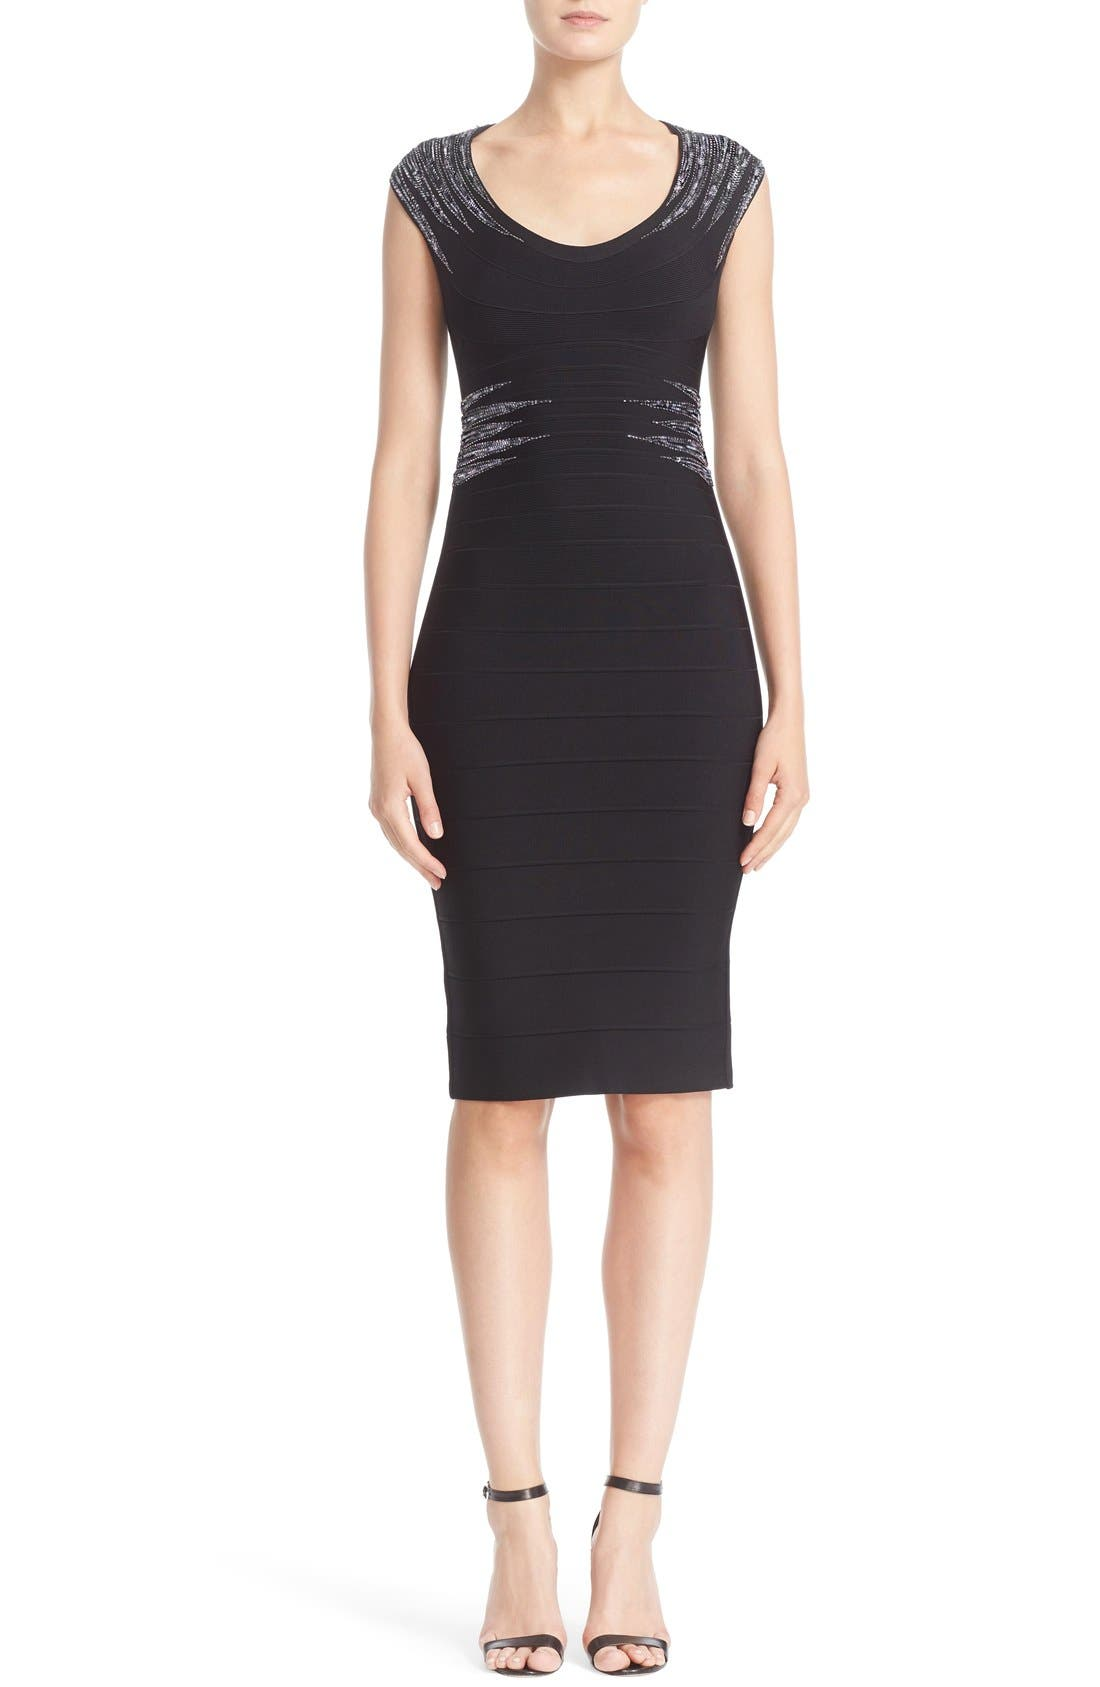 HERVE LEGER 'Janelle' Sequin Embellished Bandage Dress